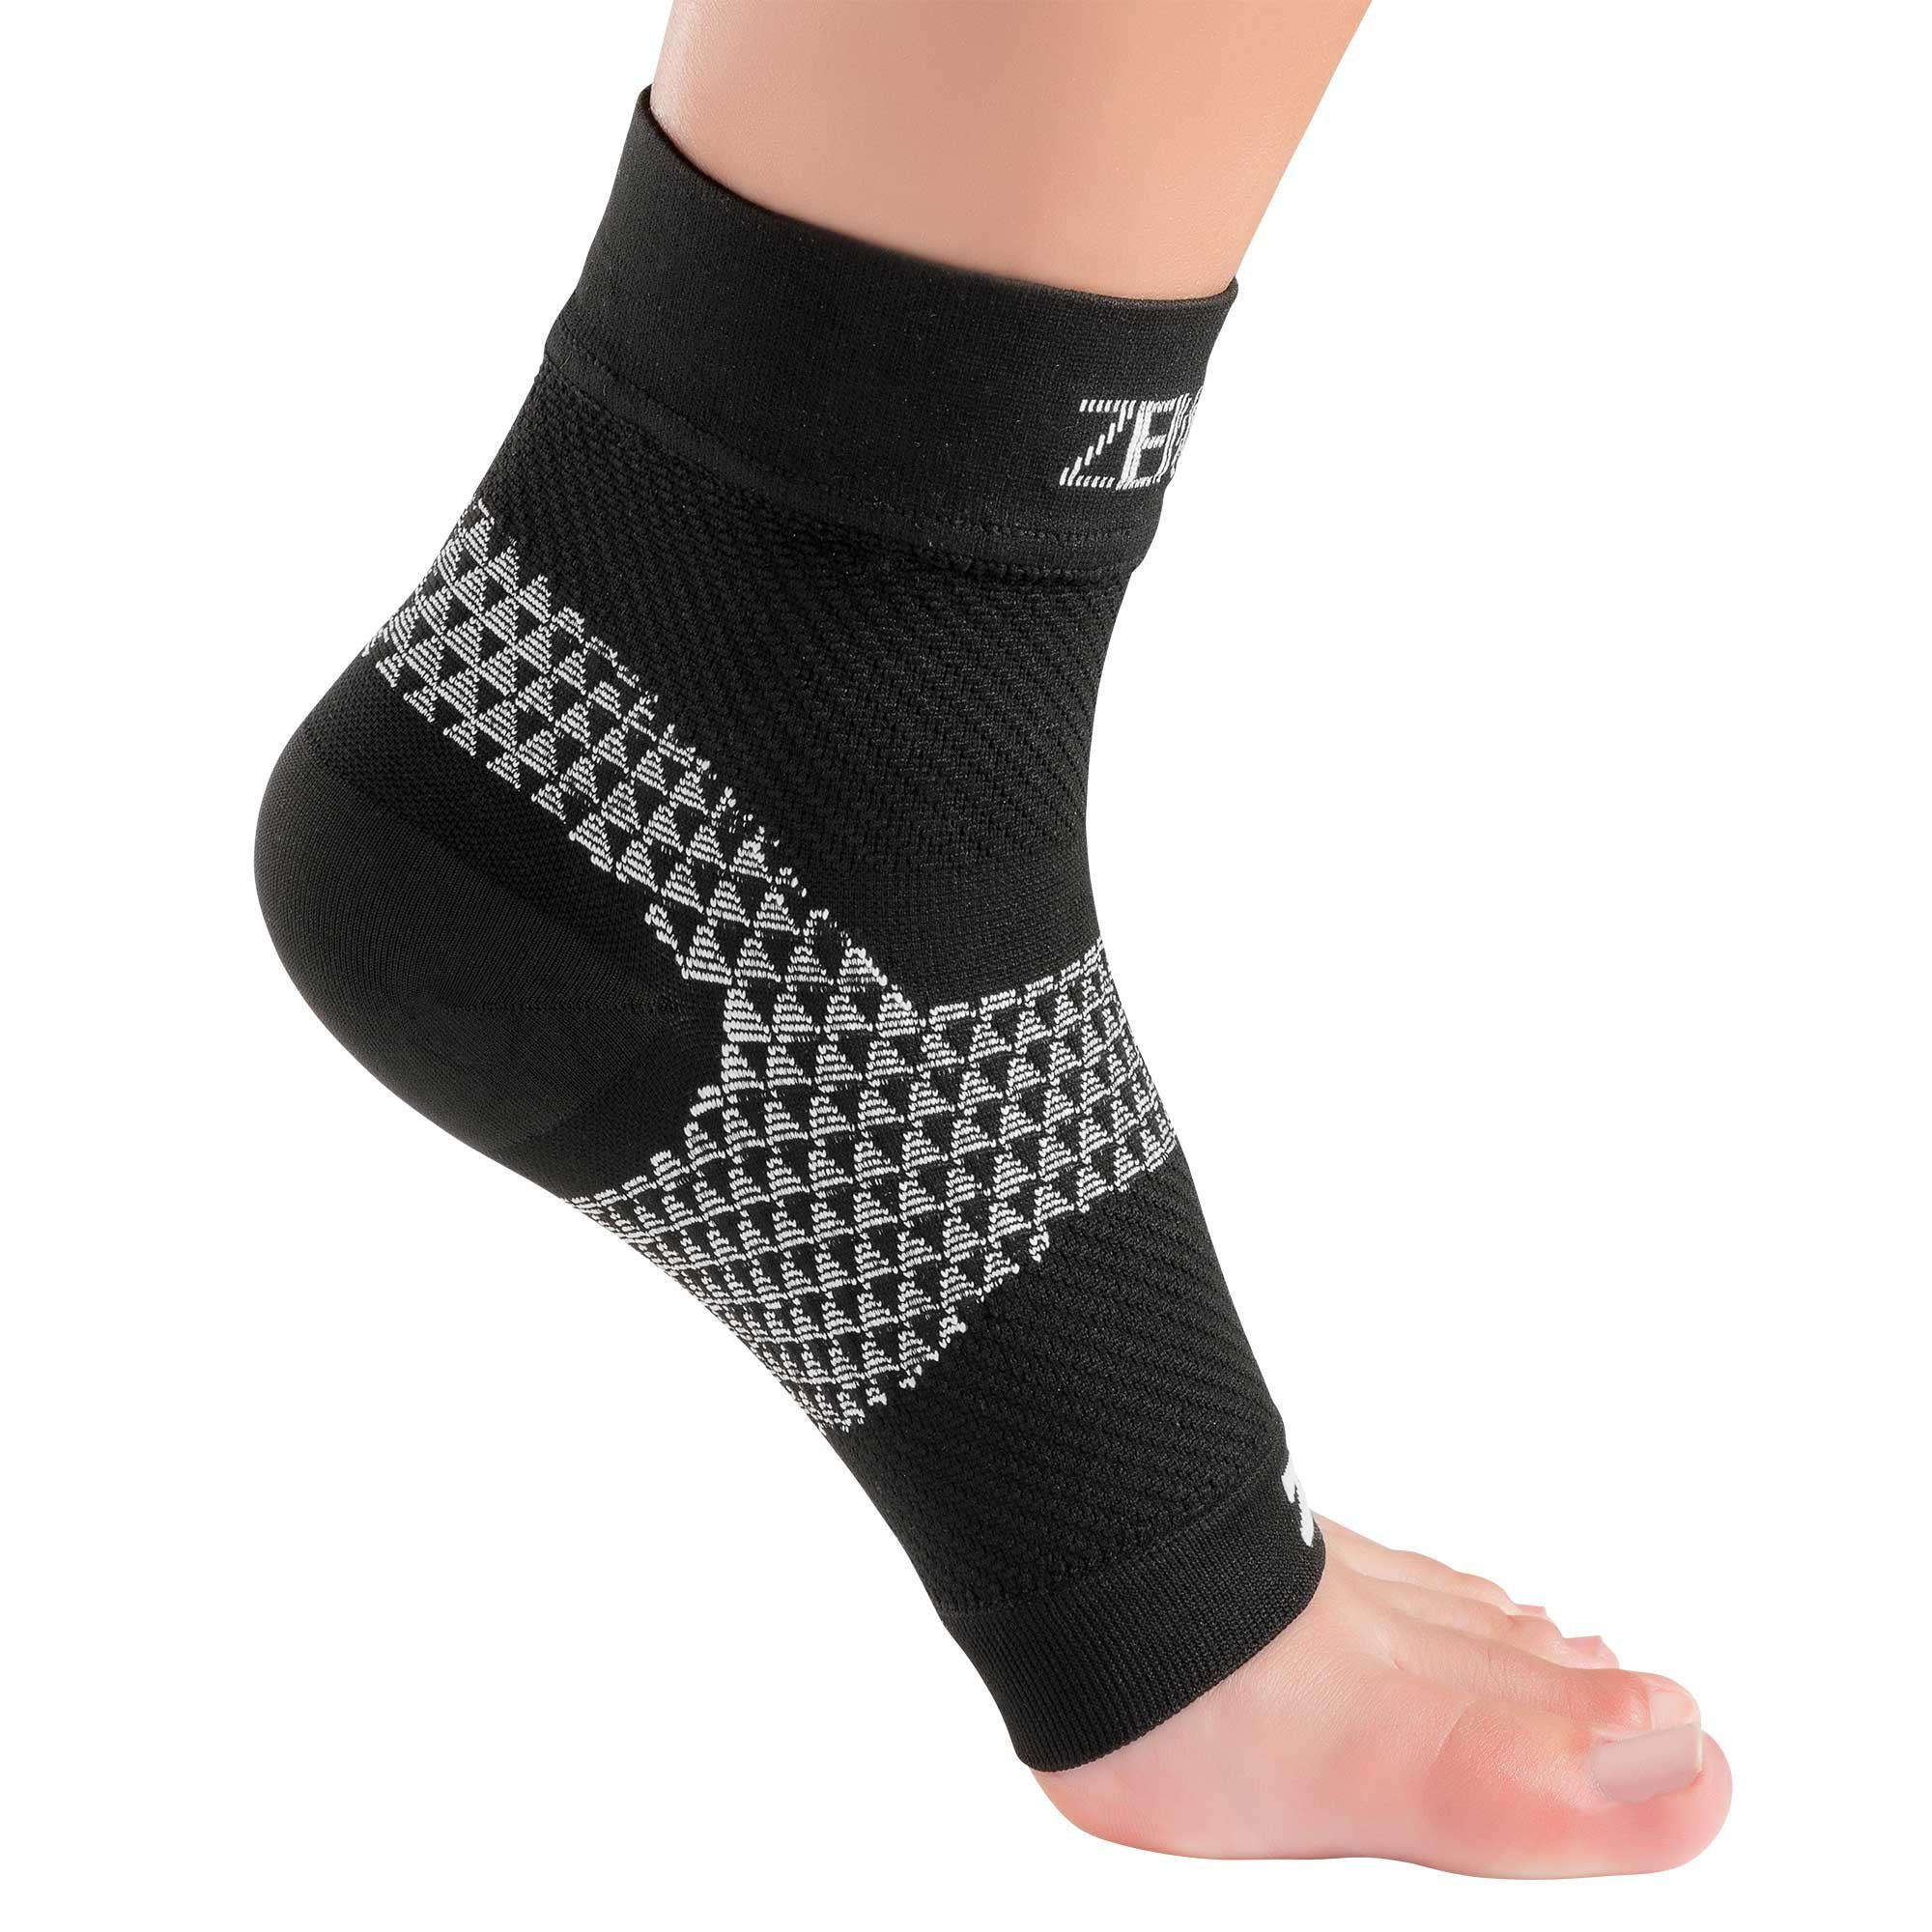 Zensah Plantar Fasciitis Ankle Sleeves, Small, Black